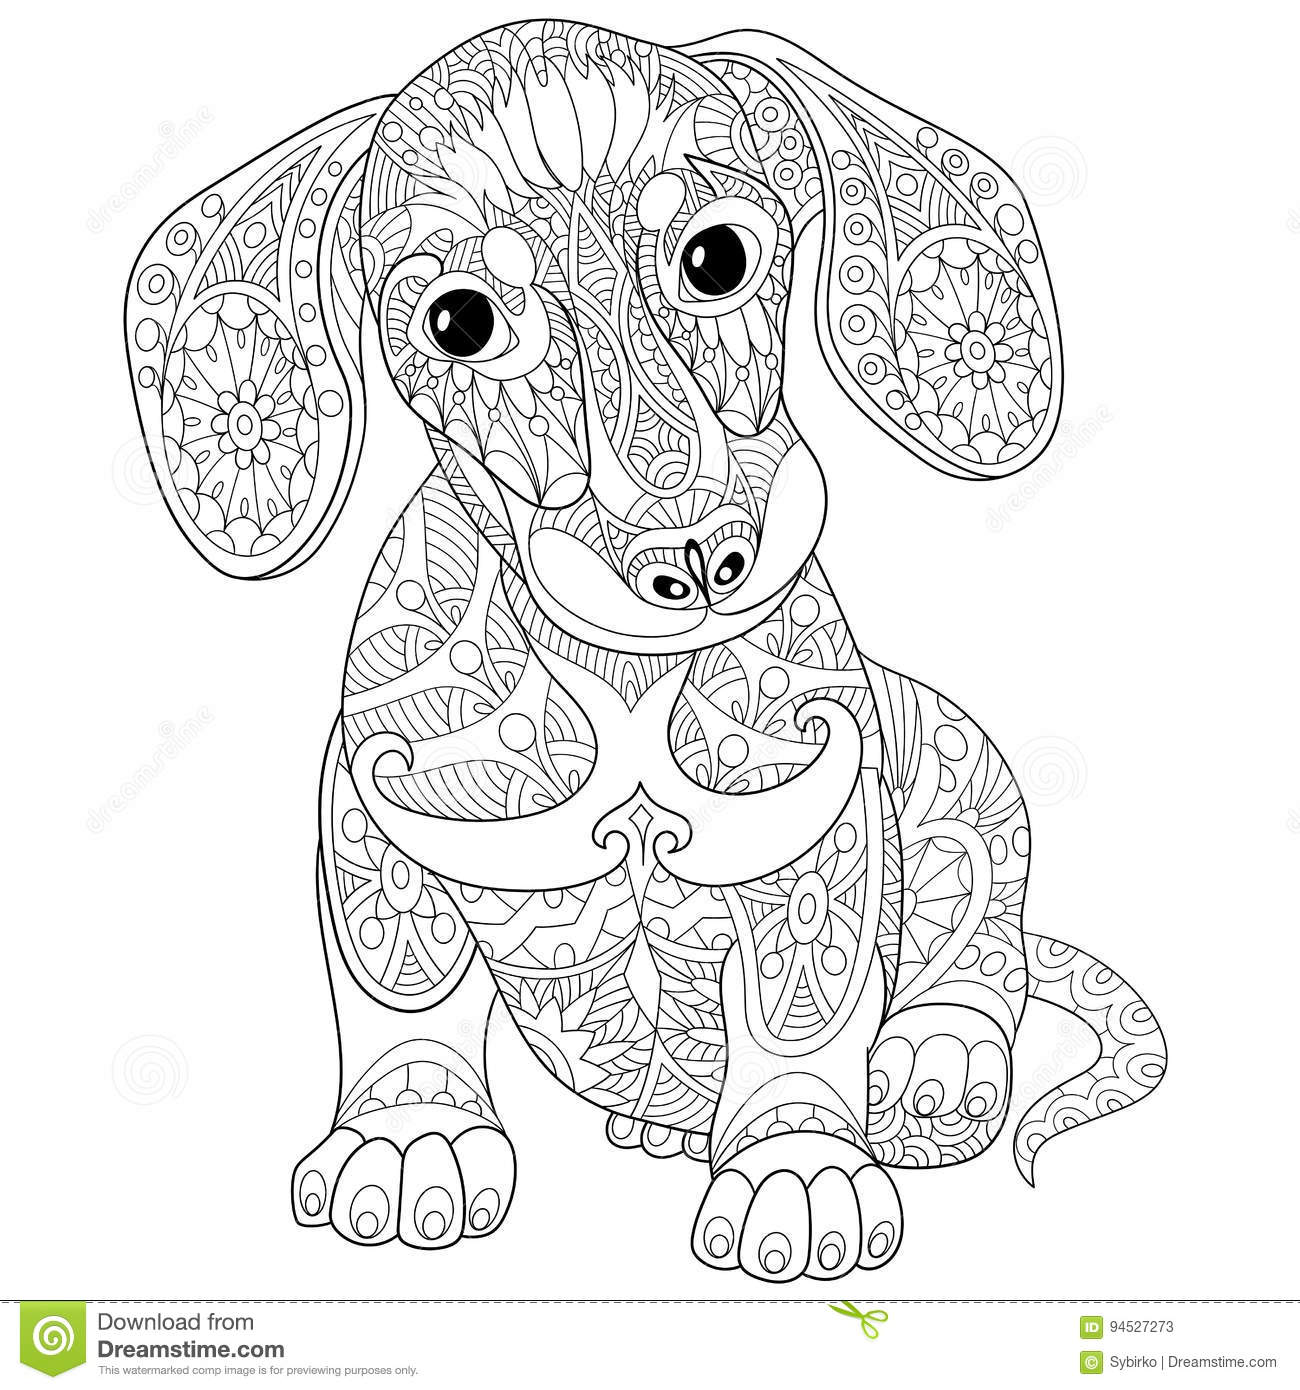 Mobile Adult Coloring Pages Dachshund Coloring Pages